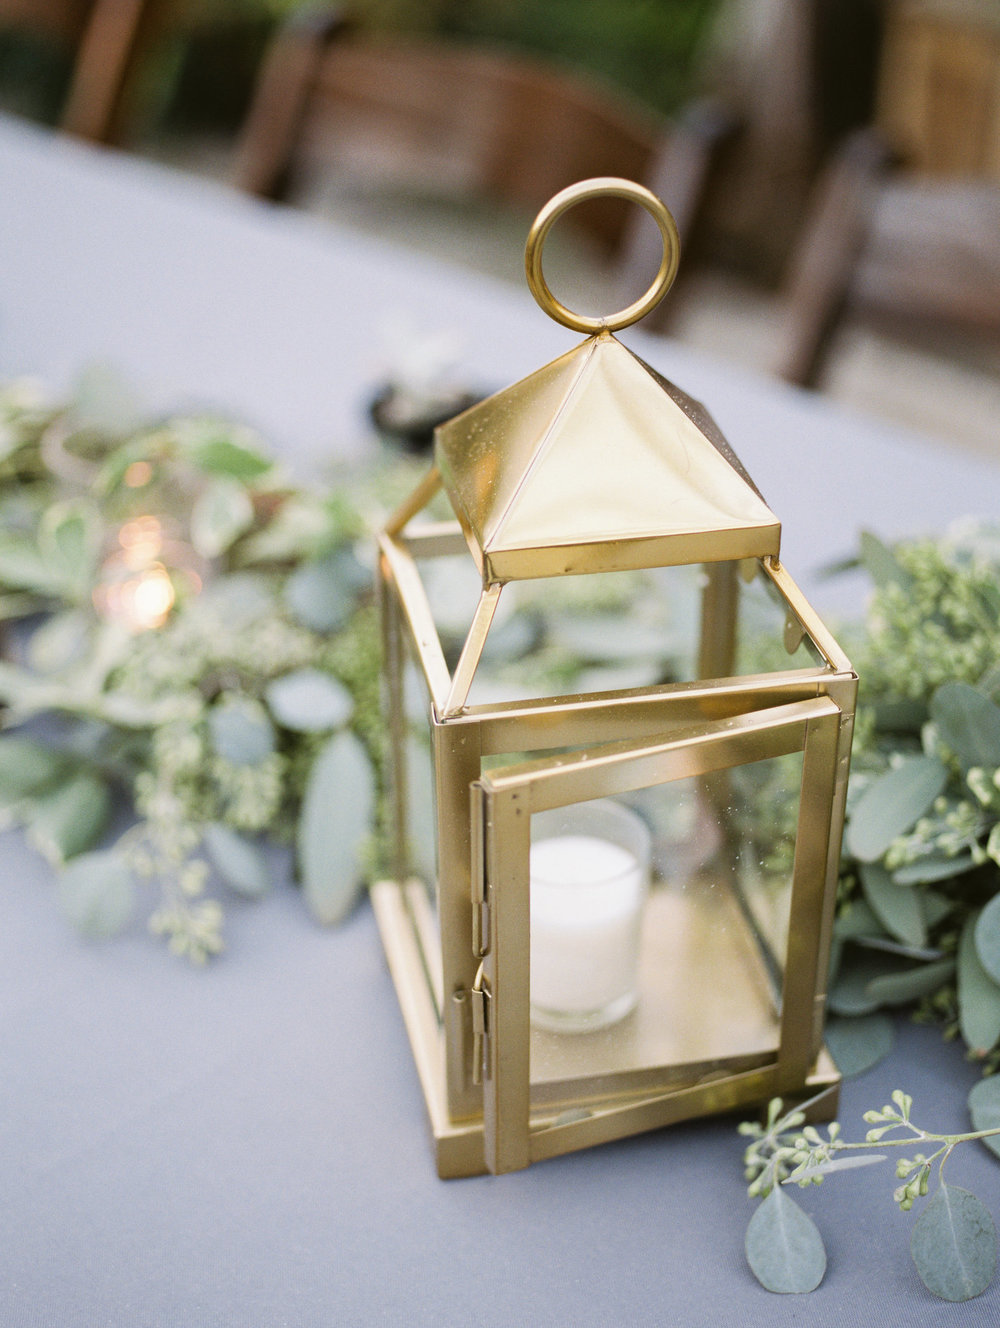 Sample Recipe - Bridal Bouquet x 1Bridesmaids Bouquets x 5Groom Bout x 1Groomsmen Bouts x 5Ceremony Arch Swag x 1Reception Table Greenery x 15Gift Table Arrangement x 1